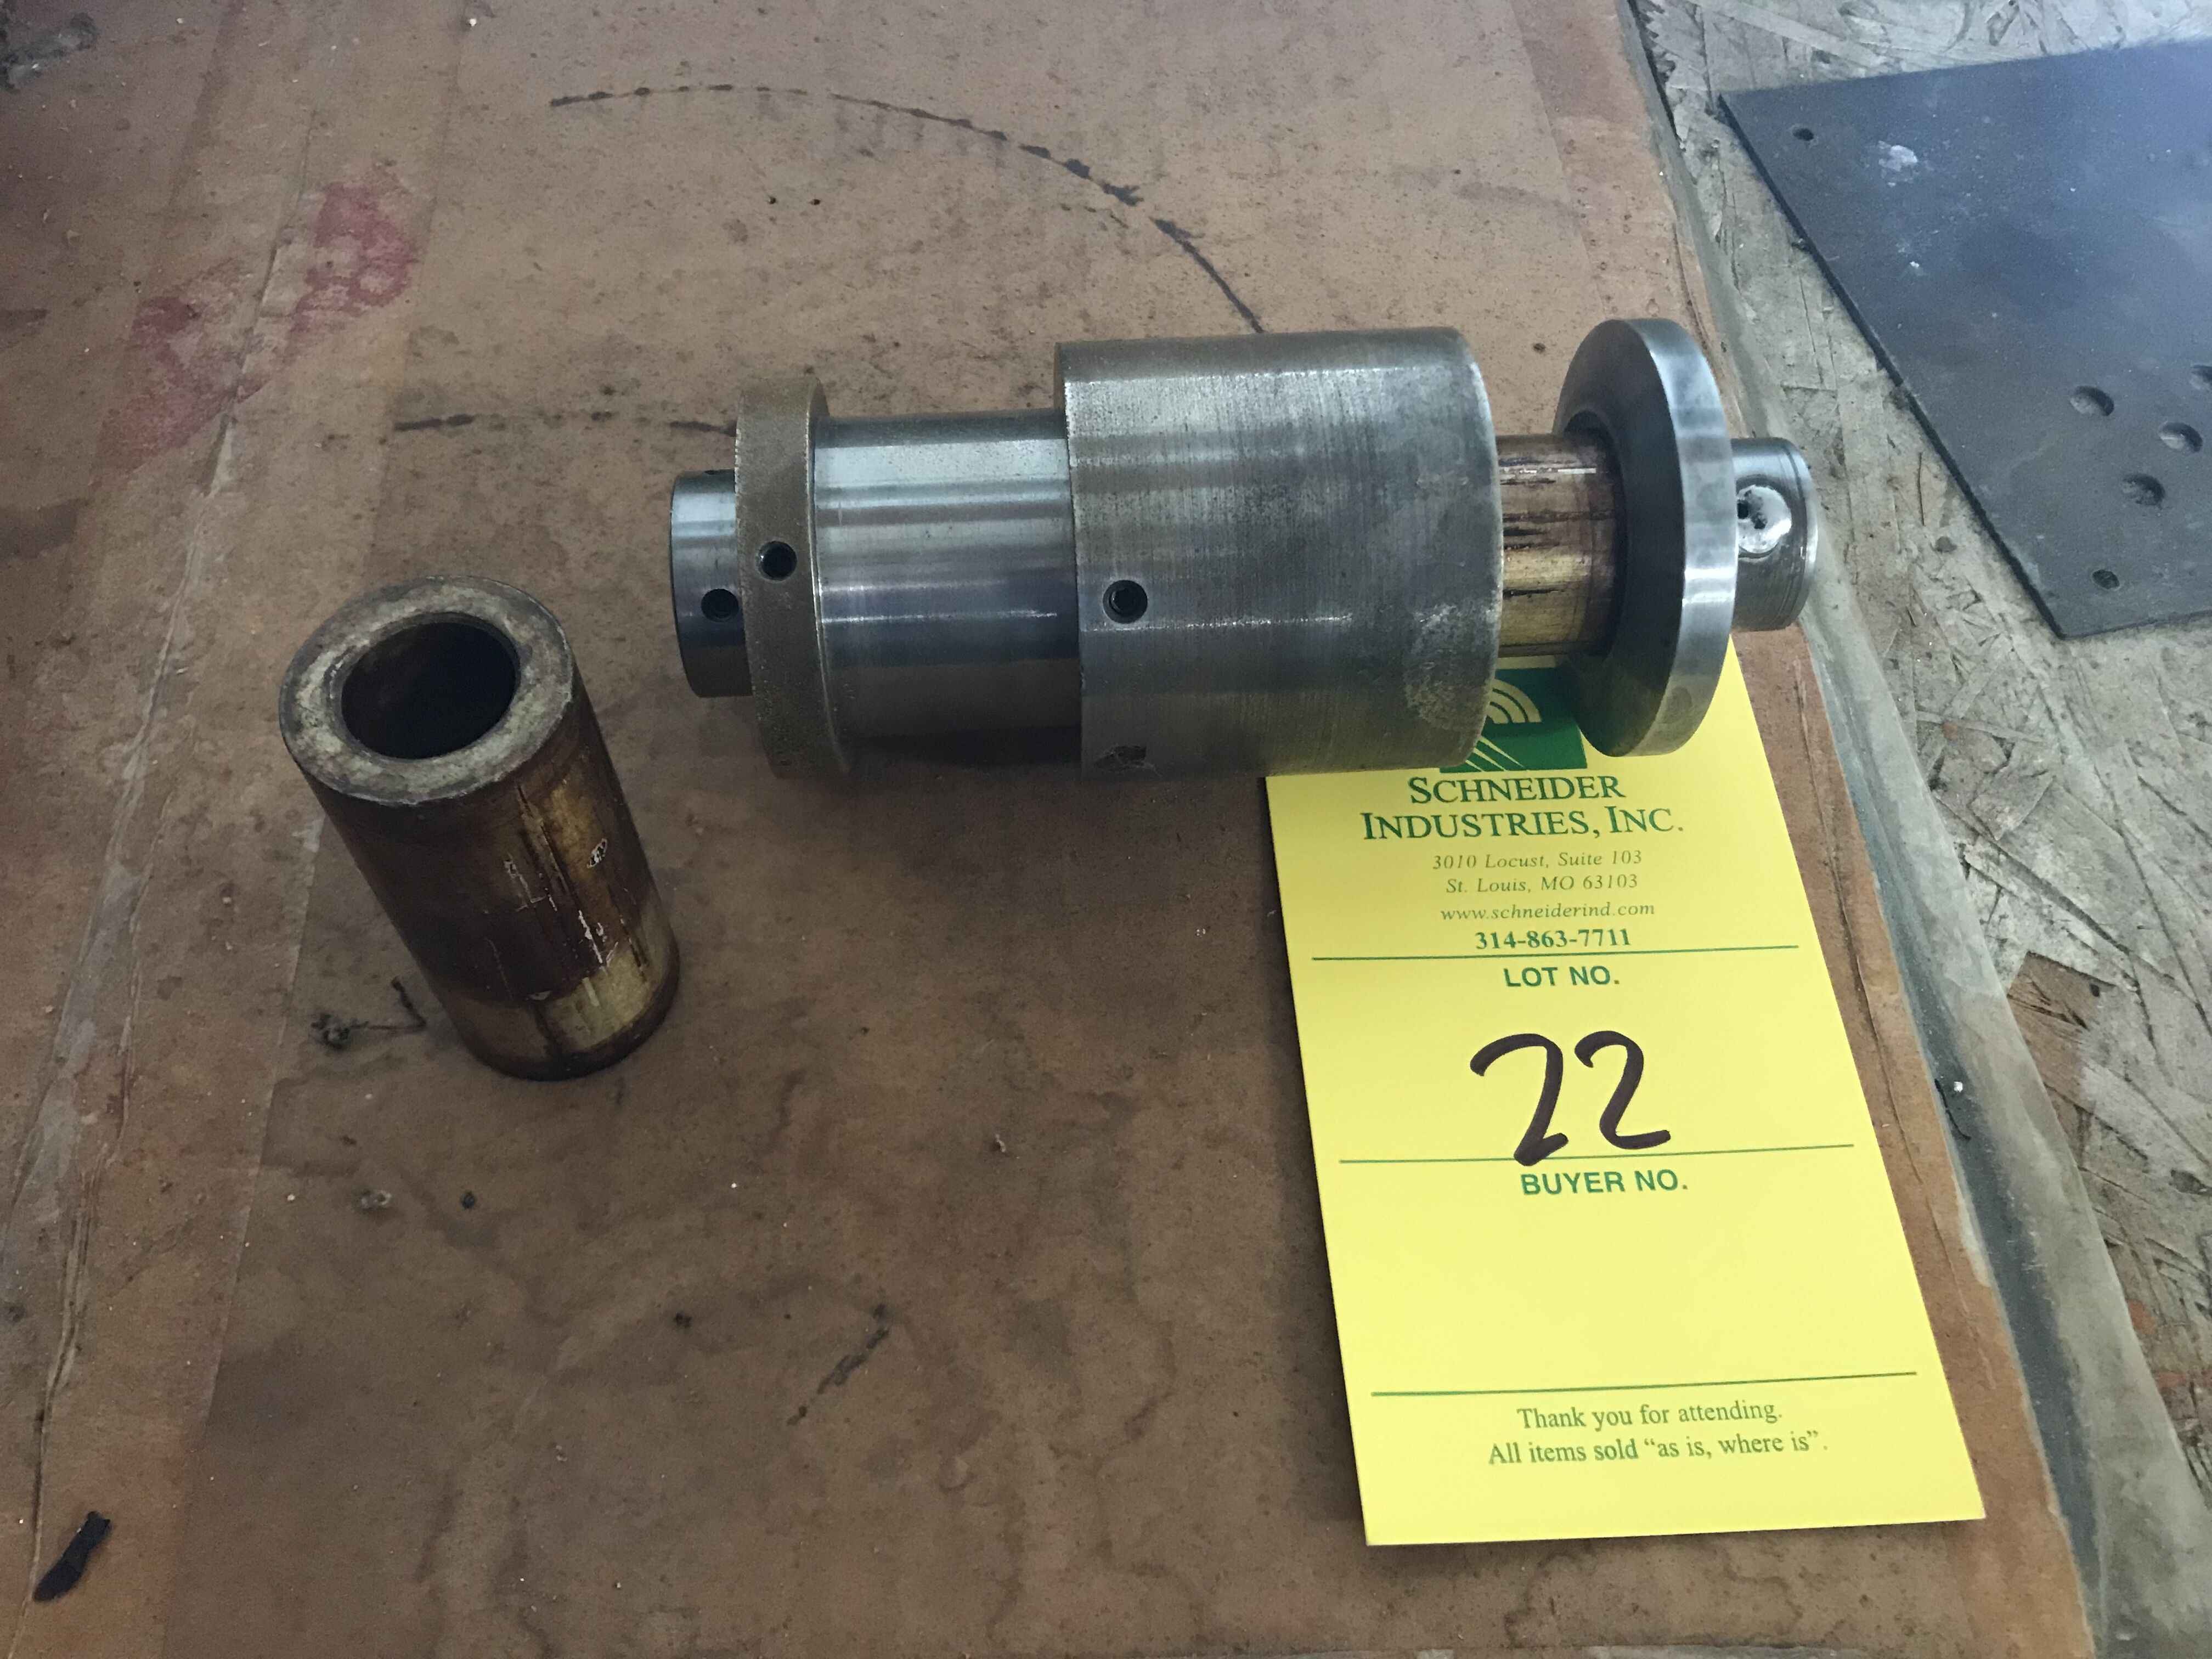 Lot 22 - 1.27 inch Voice Coil Tooling & All 1.27 inch Mandrels